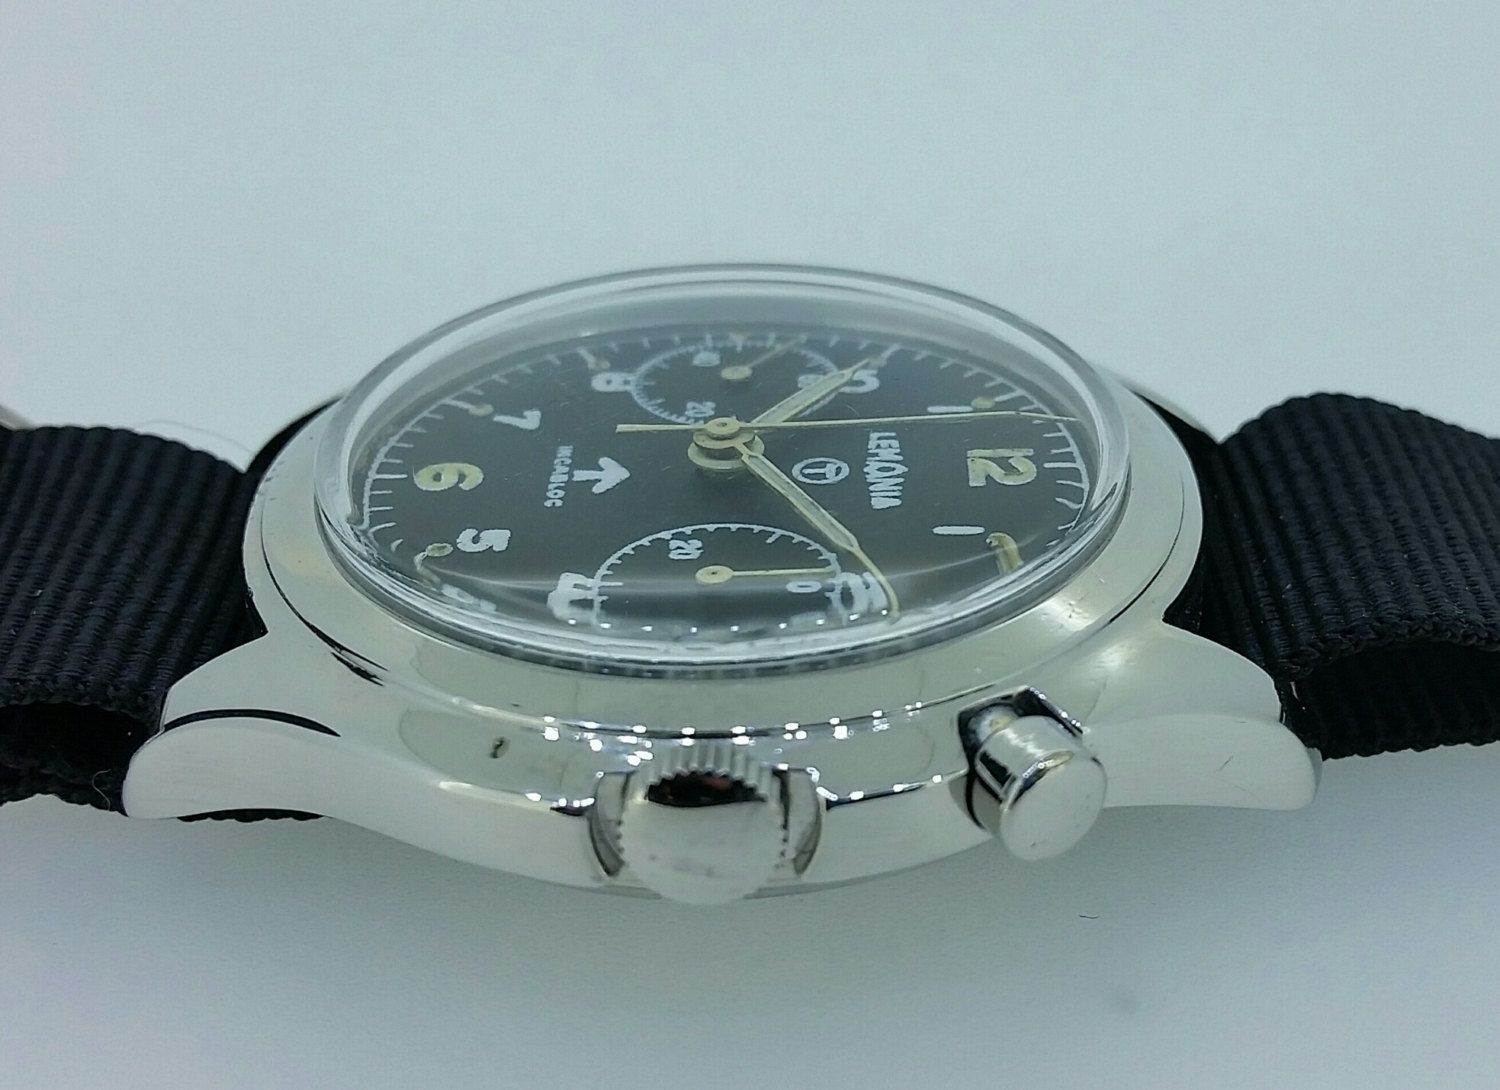 New to Pilbrows on Etsy: Lemania RAF military watch (4500.00 NZD)